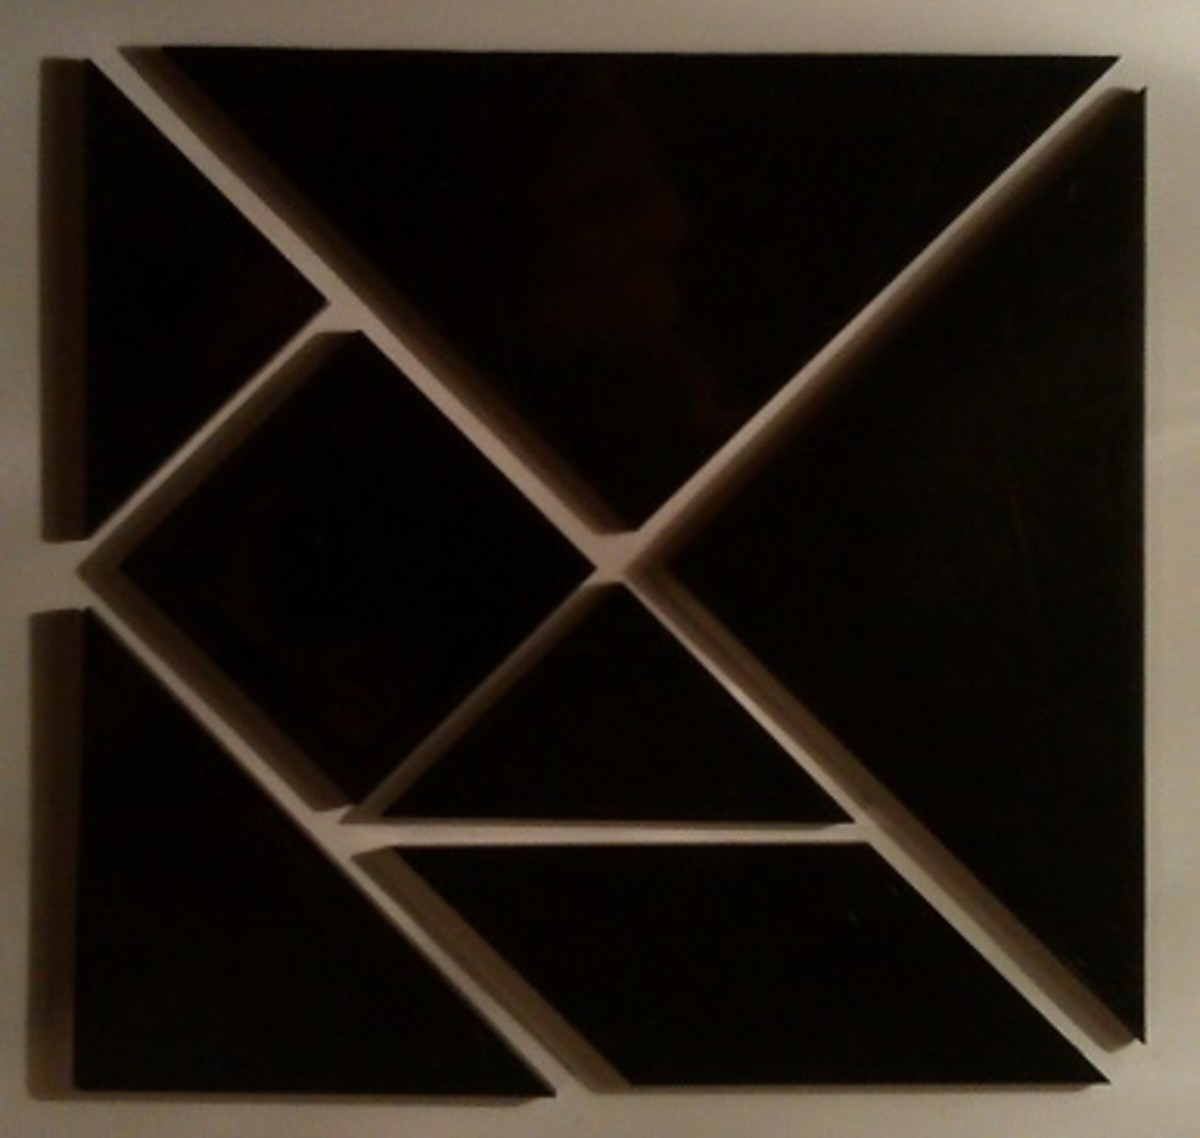 One way to put the tangram pieces together to make a square.